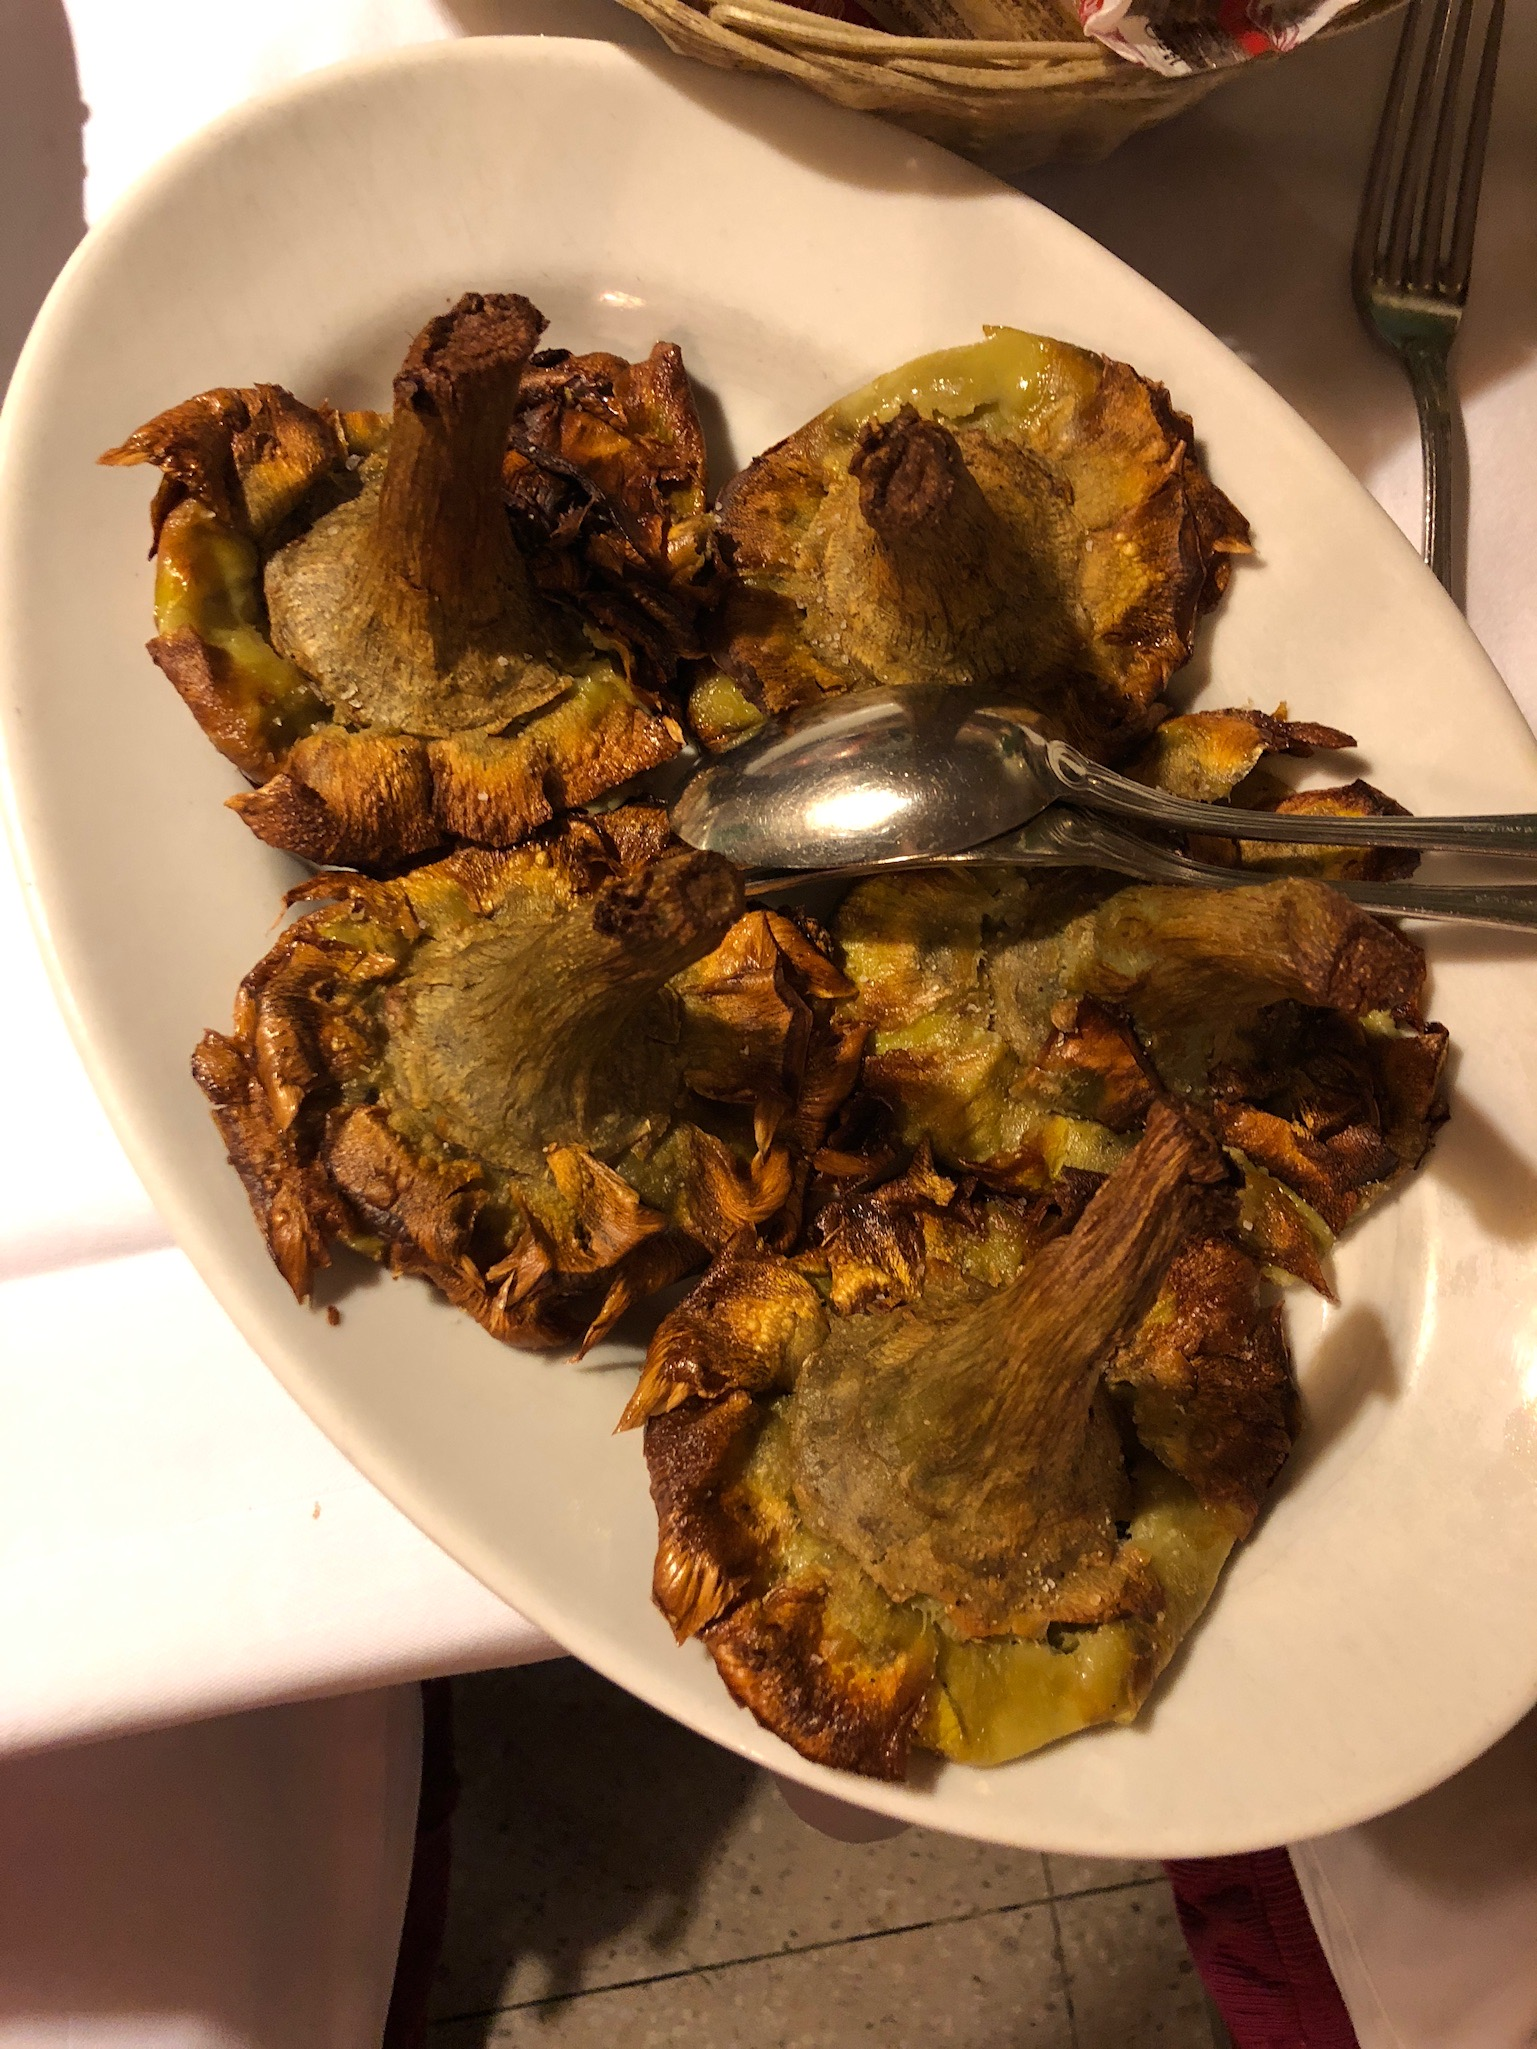 One of the most classic appetizers in Rome that you can find in restaurants or sold by the street vendors is fried artichoke flowers. We were unsure if it was customary to eat the entire thing, stems and all. But we had no problem eating it! So delicious and also not a common way to cook artichokes in U.S. establishments.